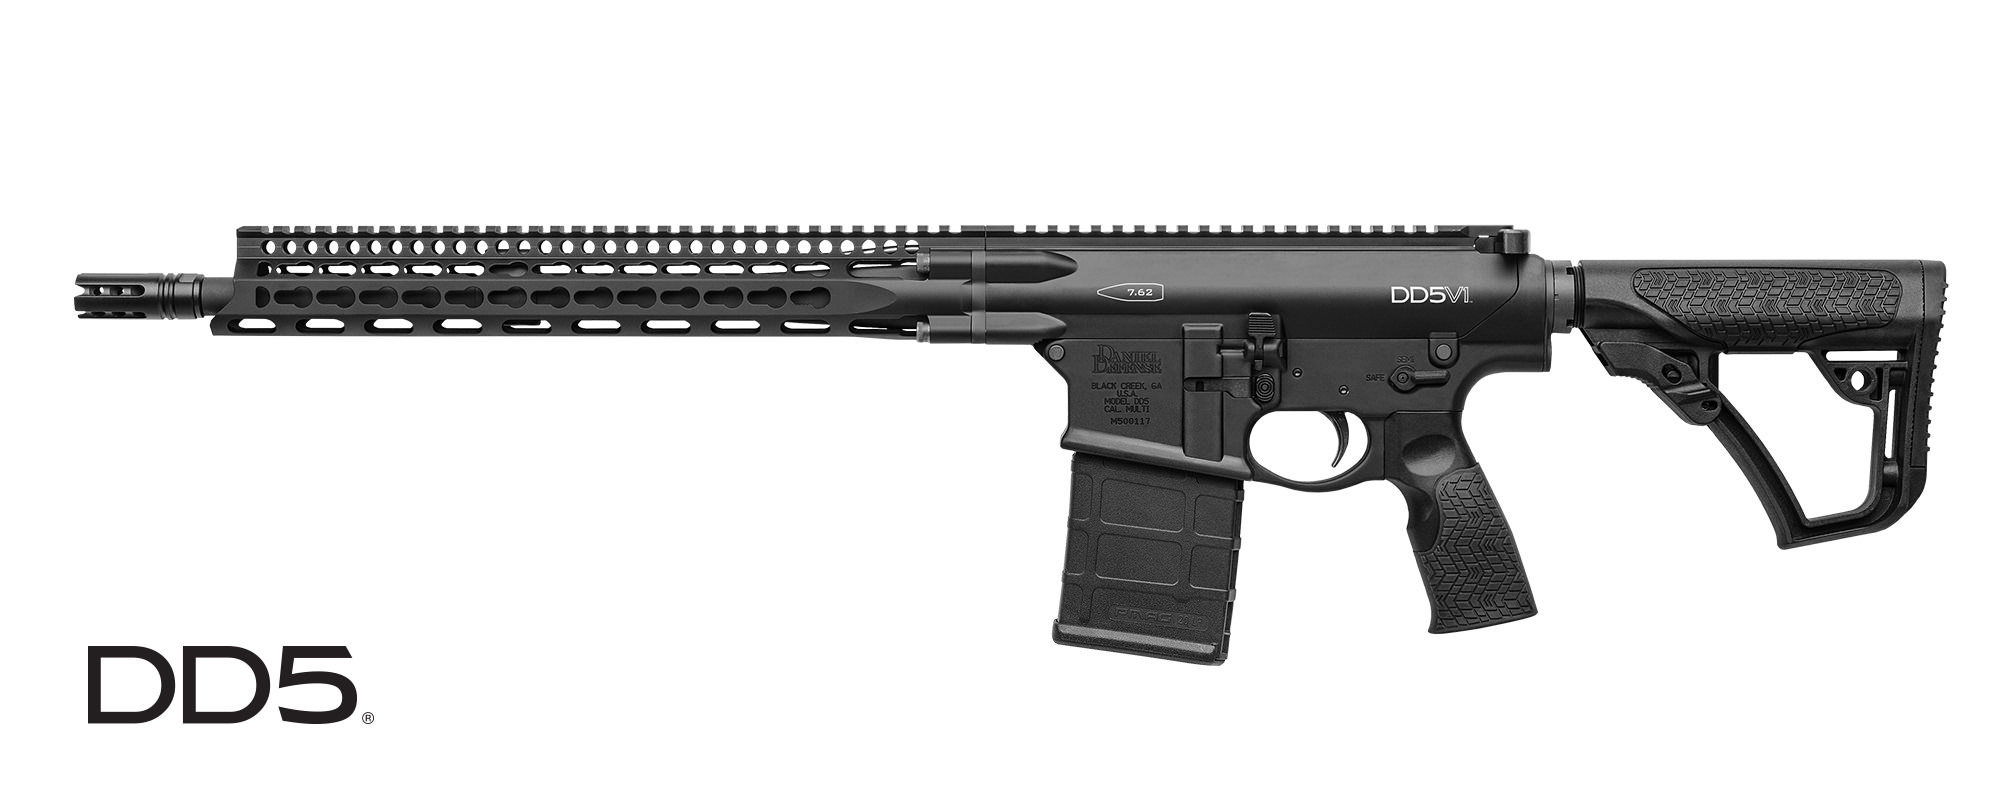 "DANIEL DEFENSE DD5 V1 SEMI-AUTO CARBINE, .308 WIN (7.62MM NATO), 16"" BBL, BLACK, NEW"